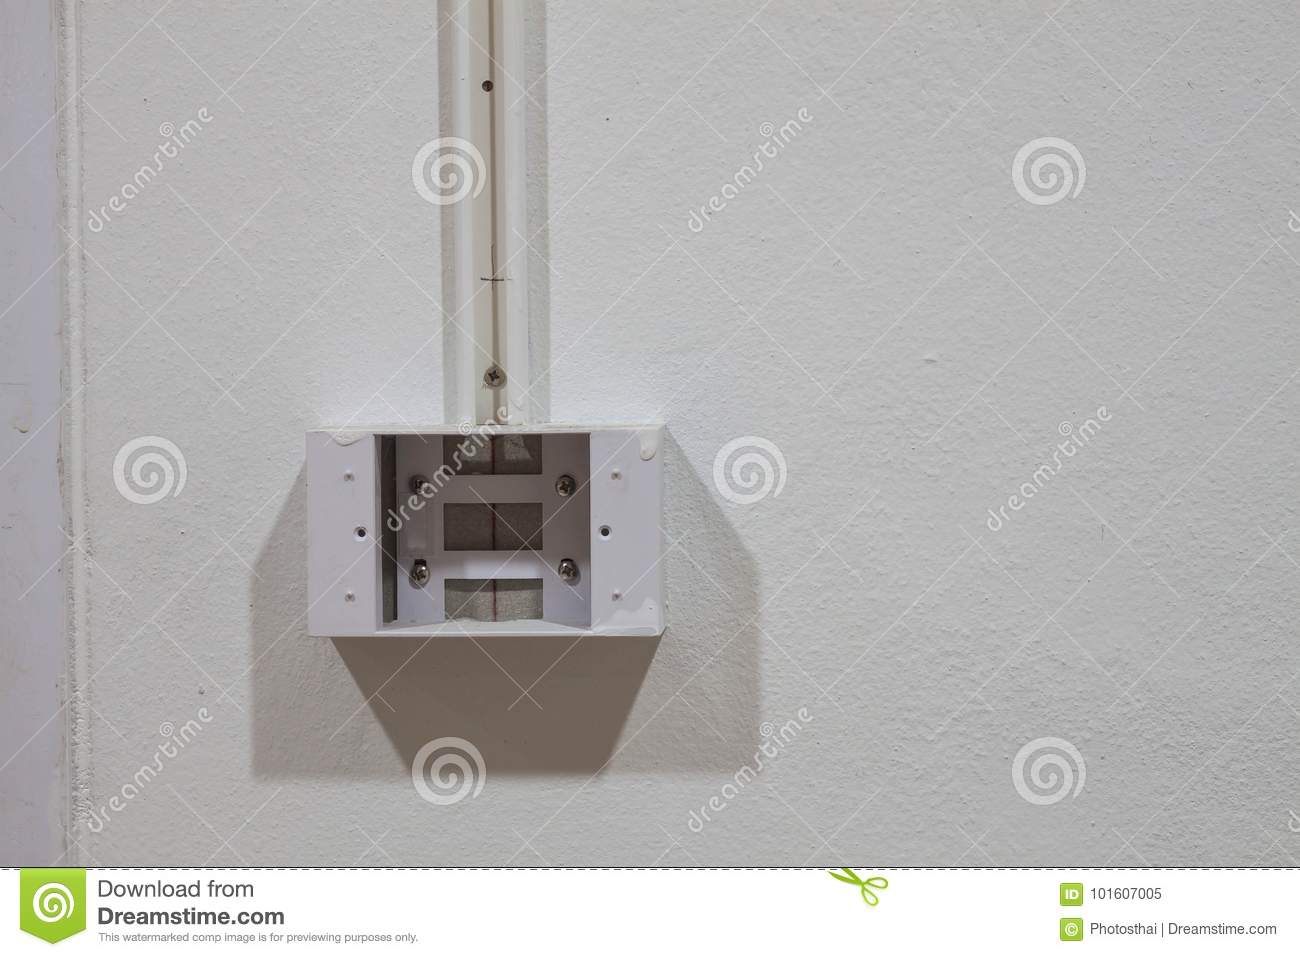 Electric Switch And Plug Circuit Box Stock Image - Image of light